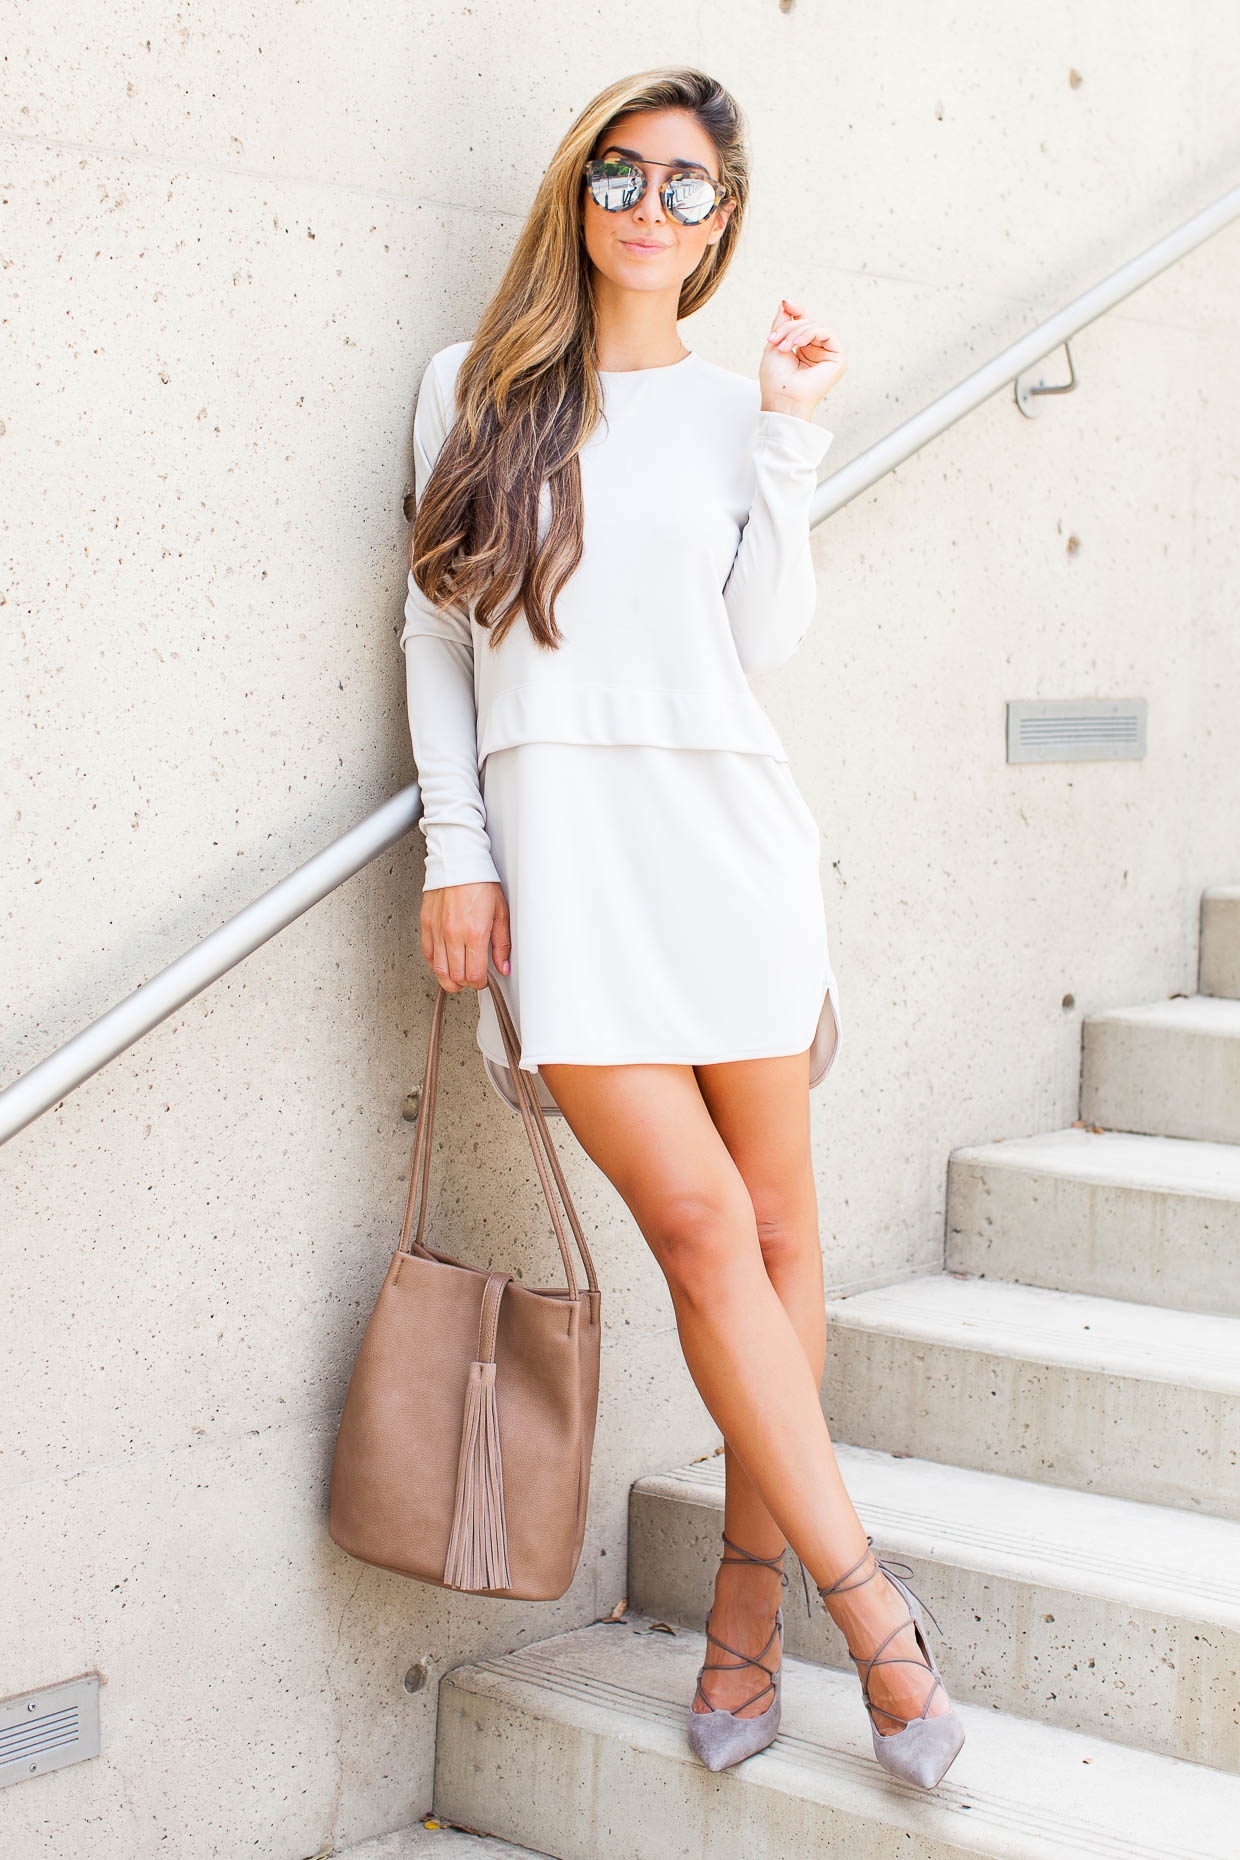 Make your mark at a summer occasion in this lovely summer outfit. Jessi has opted for a sophisticated look in this look sleeved dress, with gorgeous grey heels. Dress: Nordstrom, Shoes: Sole Society